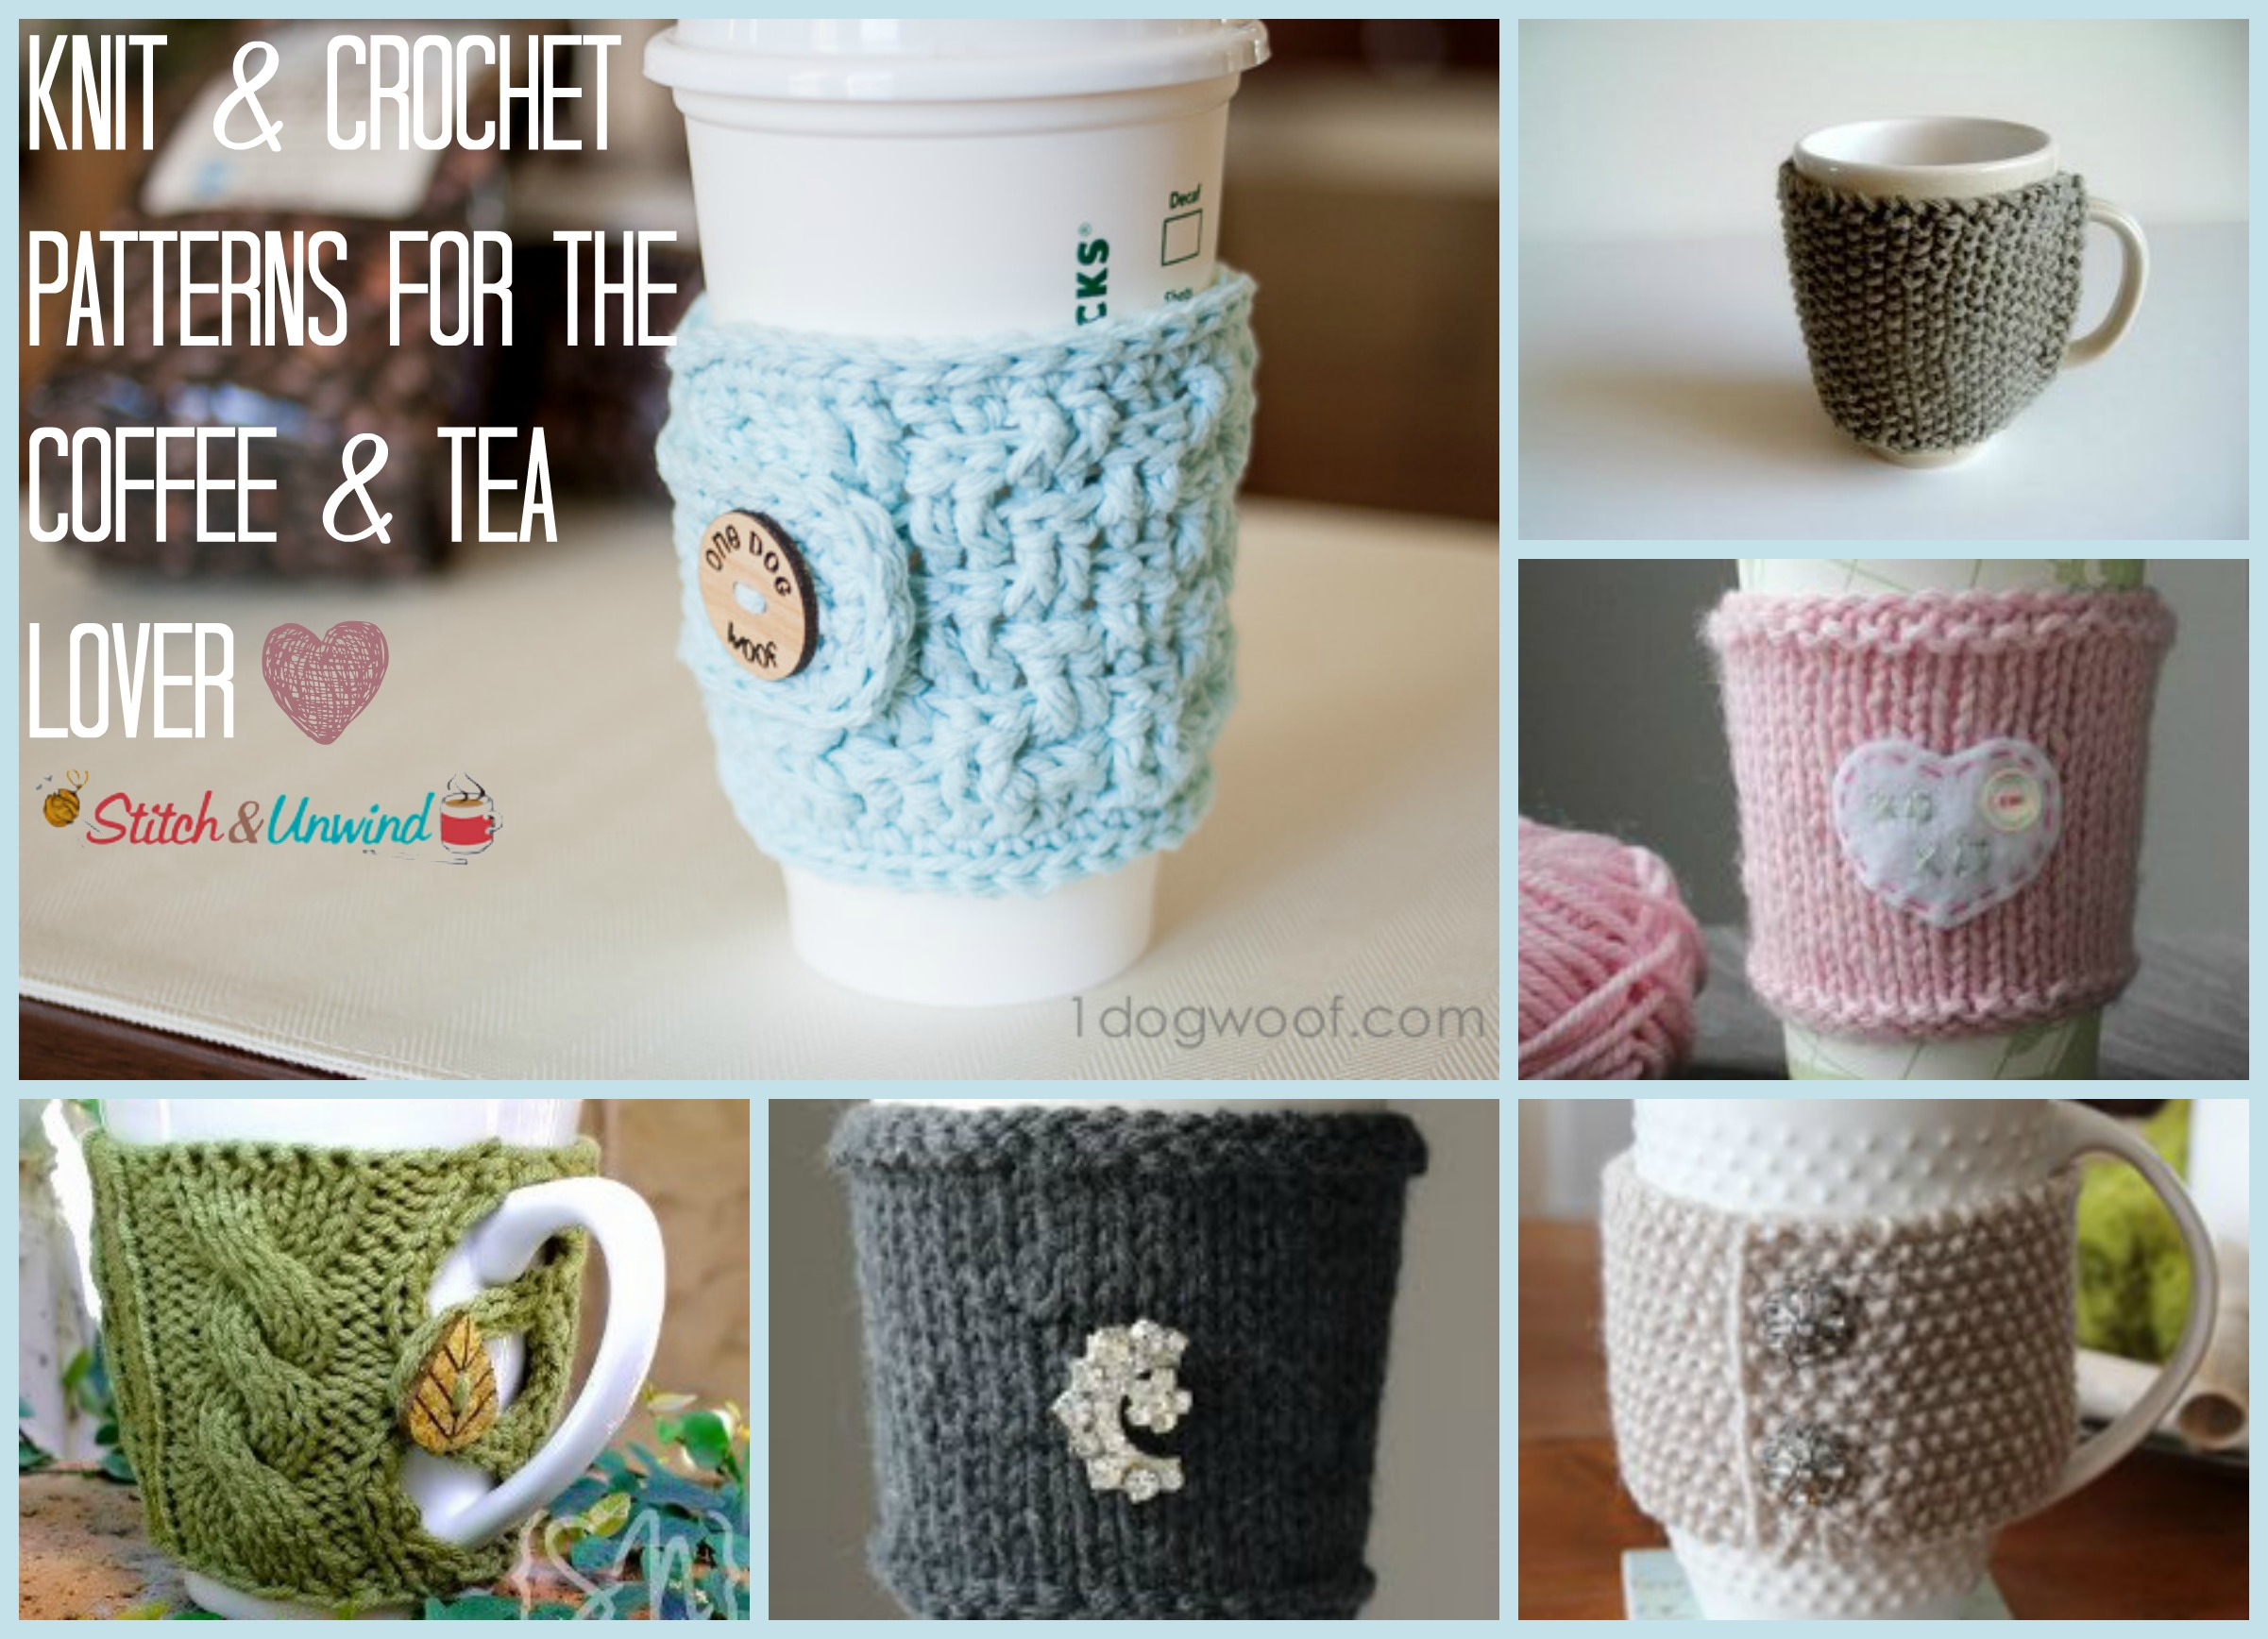 Free Knitting Pattern Coffee Cup Sleeve : Hug That Mug: Patterns for the Coffee & Tea Lover - Stitch and Unwind